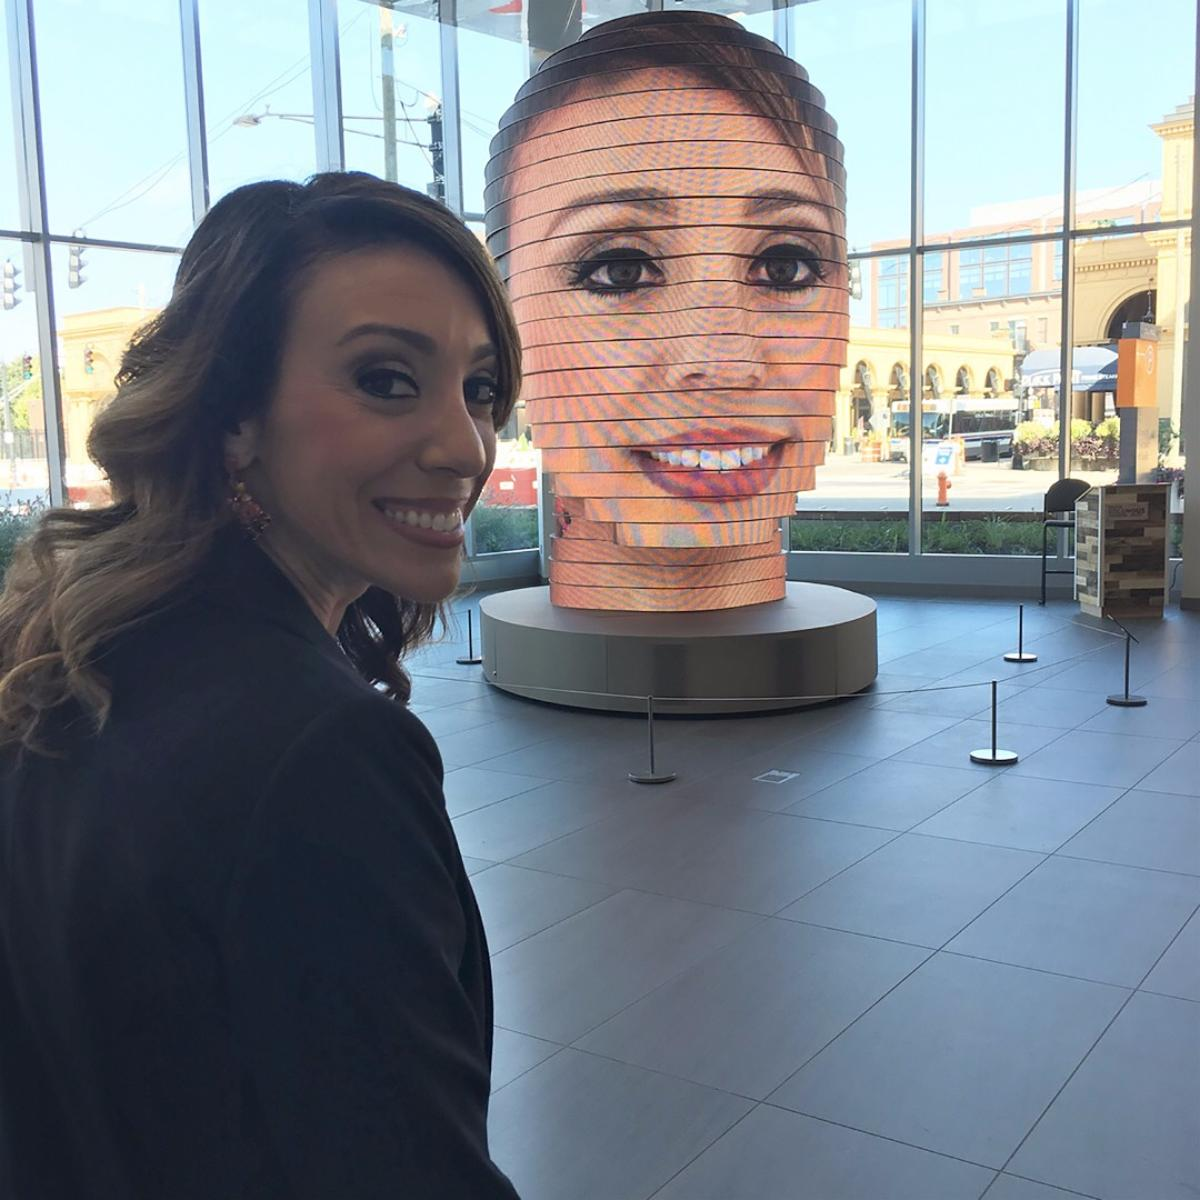 As We Are is an interactive public art installation, where visitors' selfies are displayed on a giant head for all to see